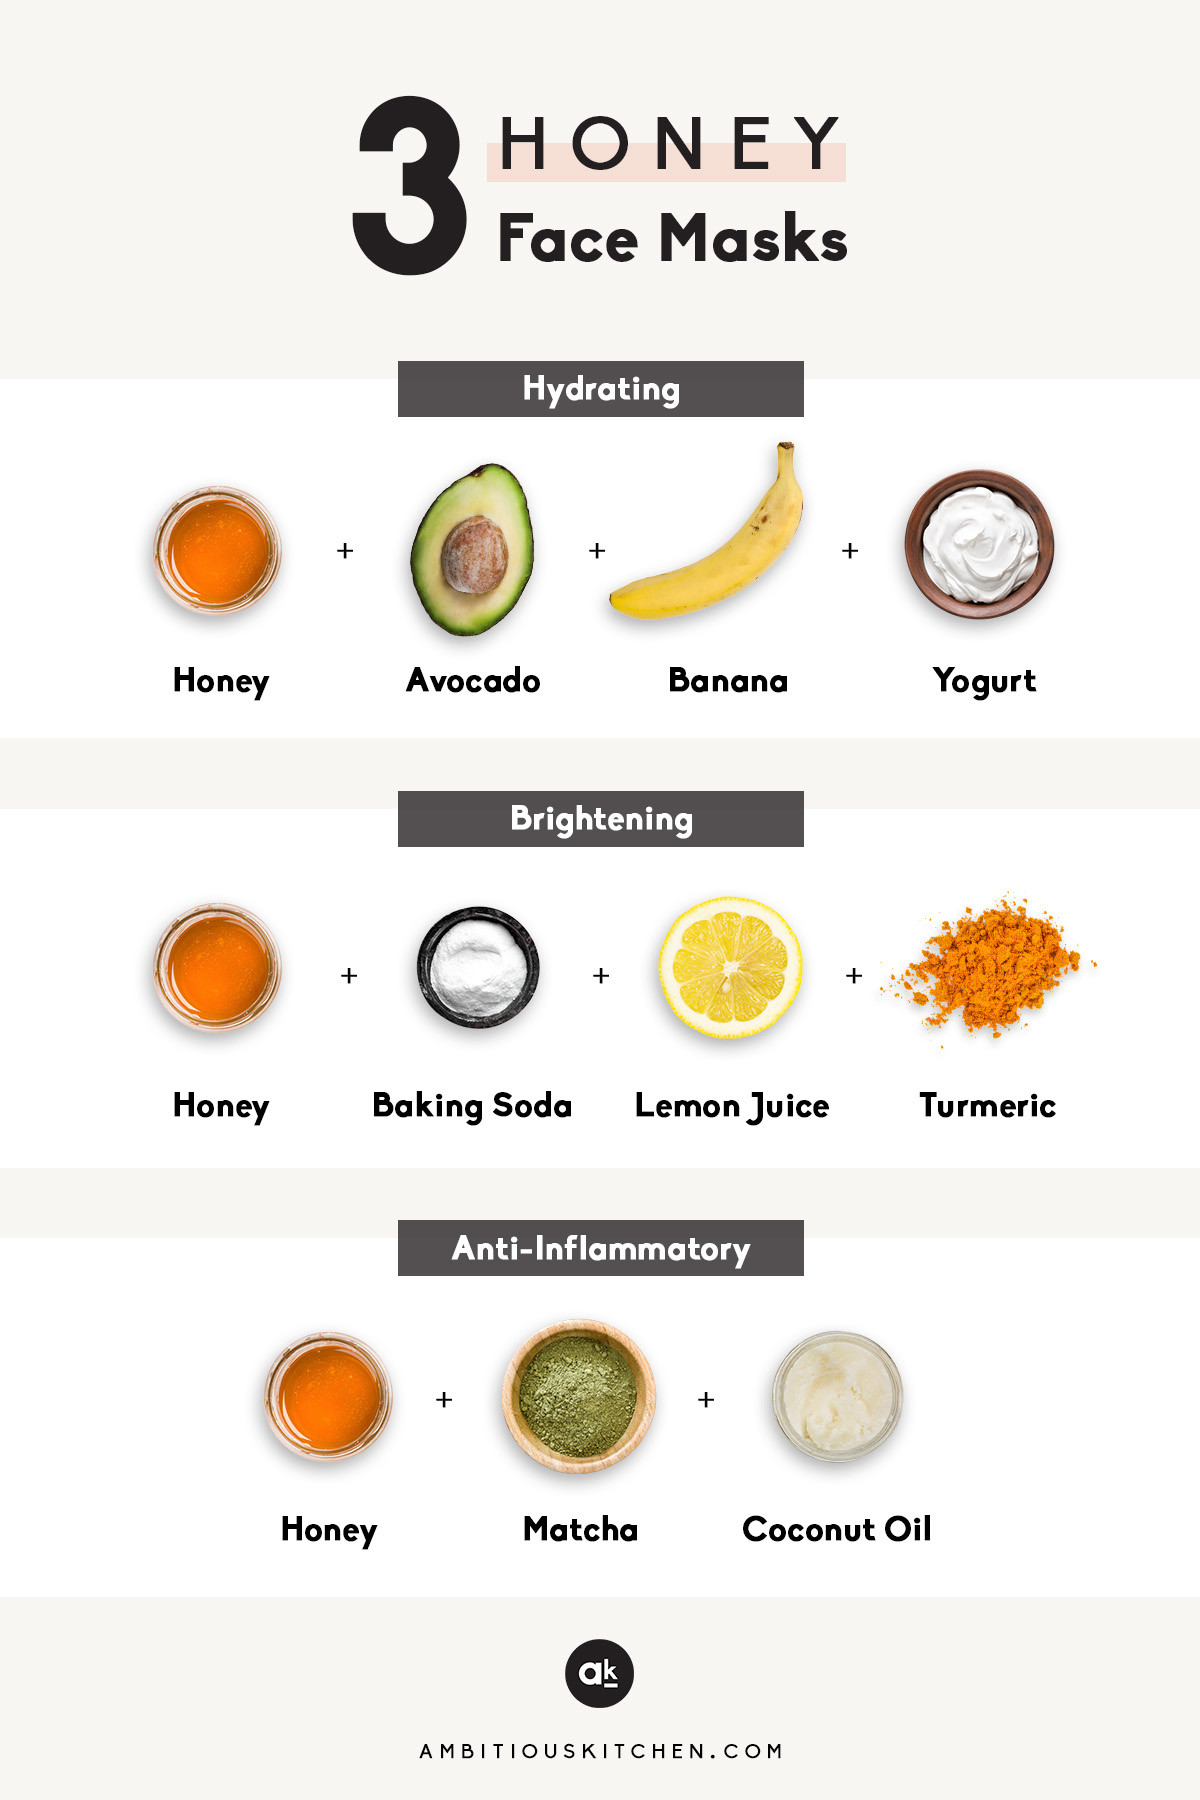 Best ideas about Face Mask DIY . Save or Pin 3 DIY Honey Face Masks video Now.